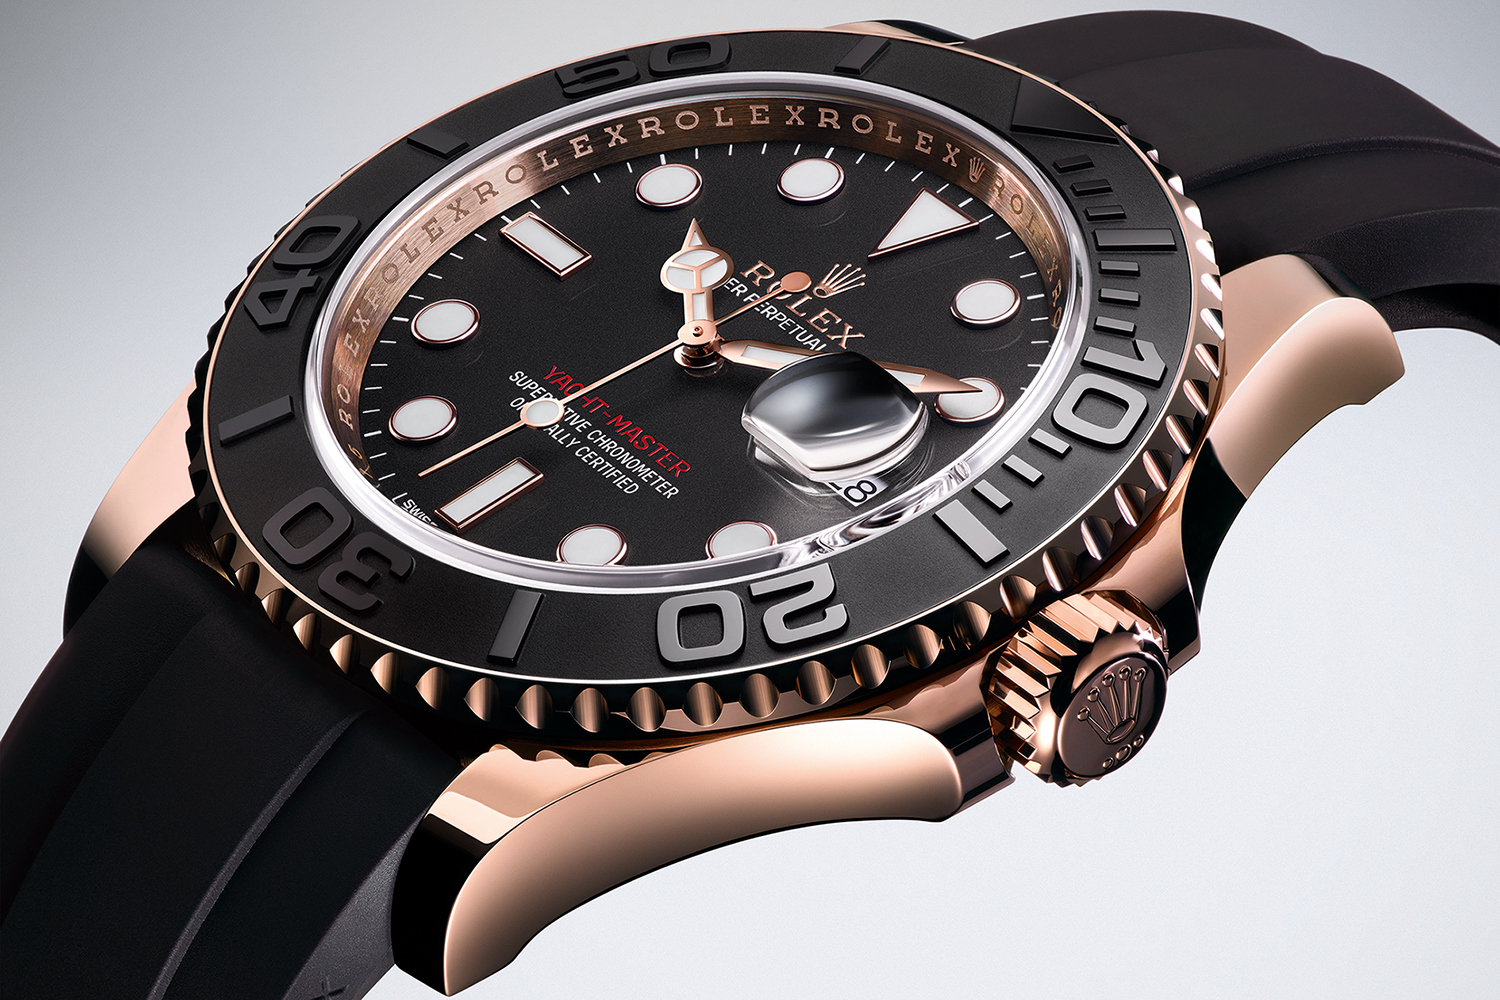 Rolex-Oyster-Perpetual-Yacht-Master-The-Watch-Lounge-2.jpg